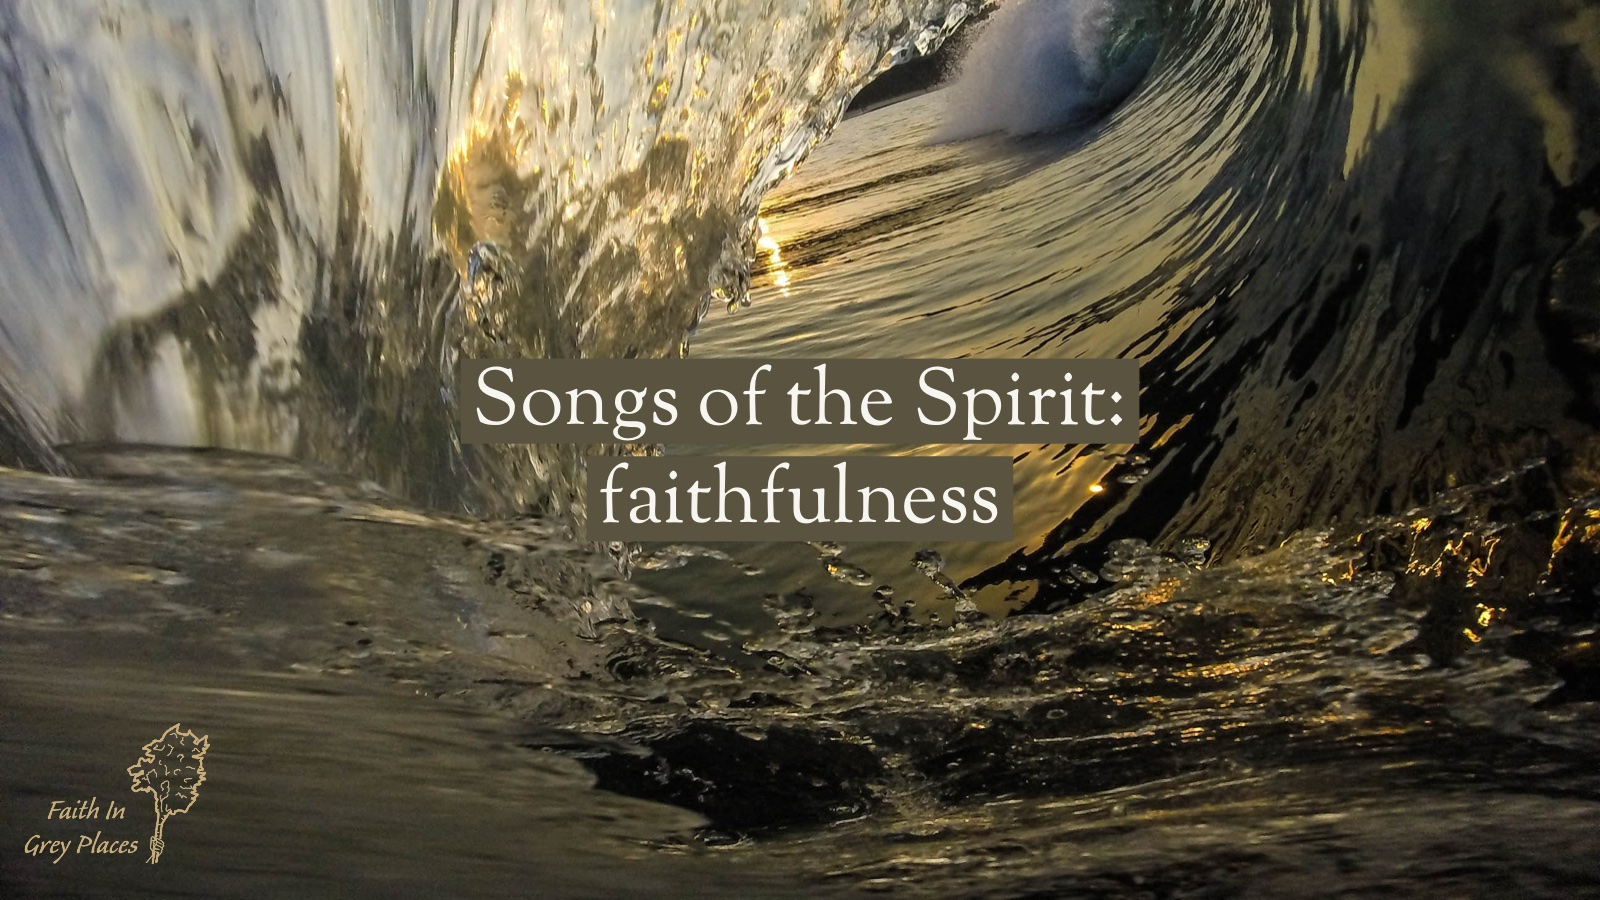 Close up inside the curl of a large crashing wave, with a smooth surface, lit by the sun. Words on top: Songs of the Spirit: Faithfulness, Faith in Grey Places